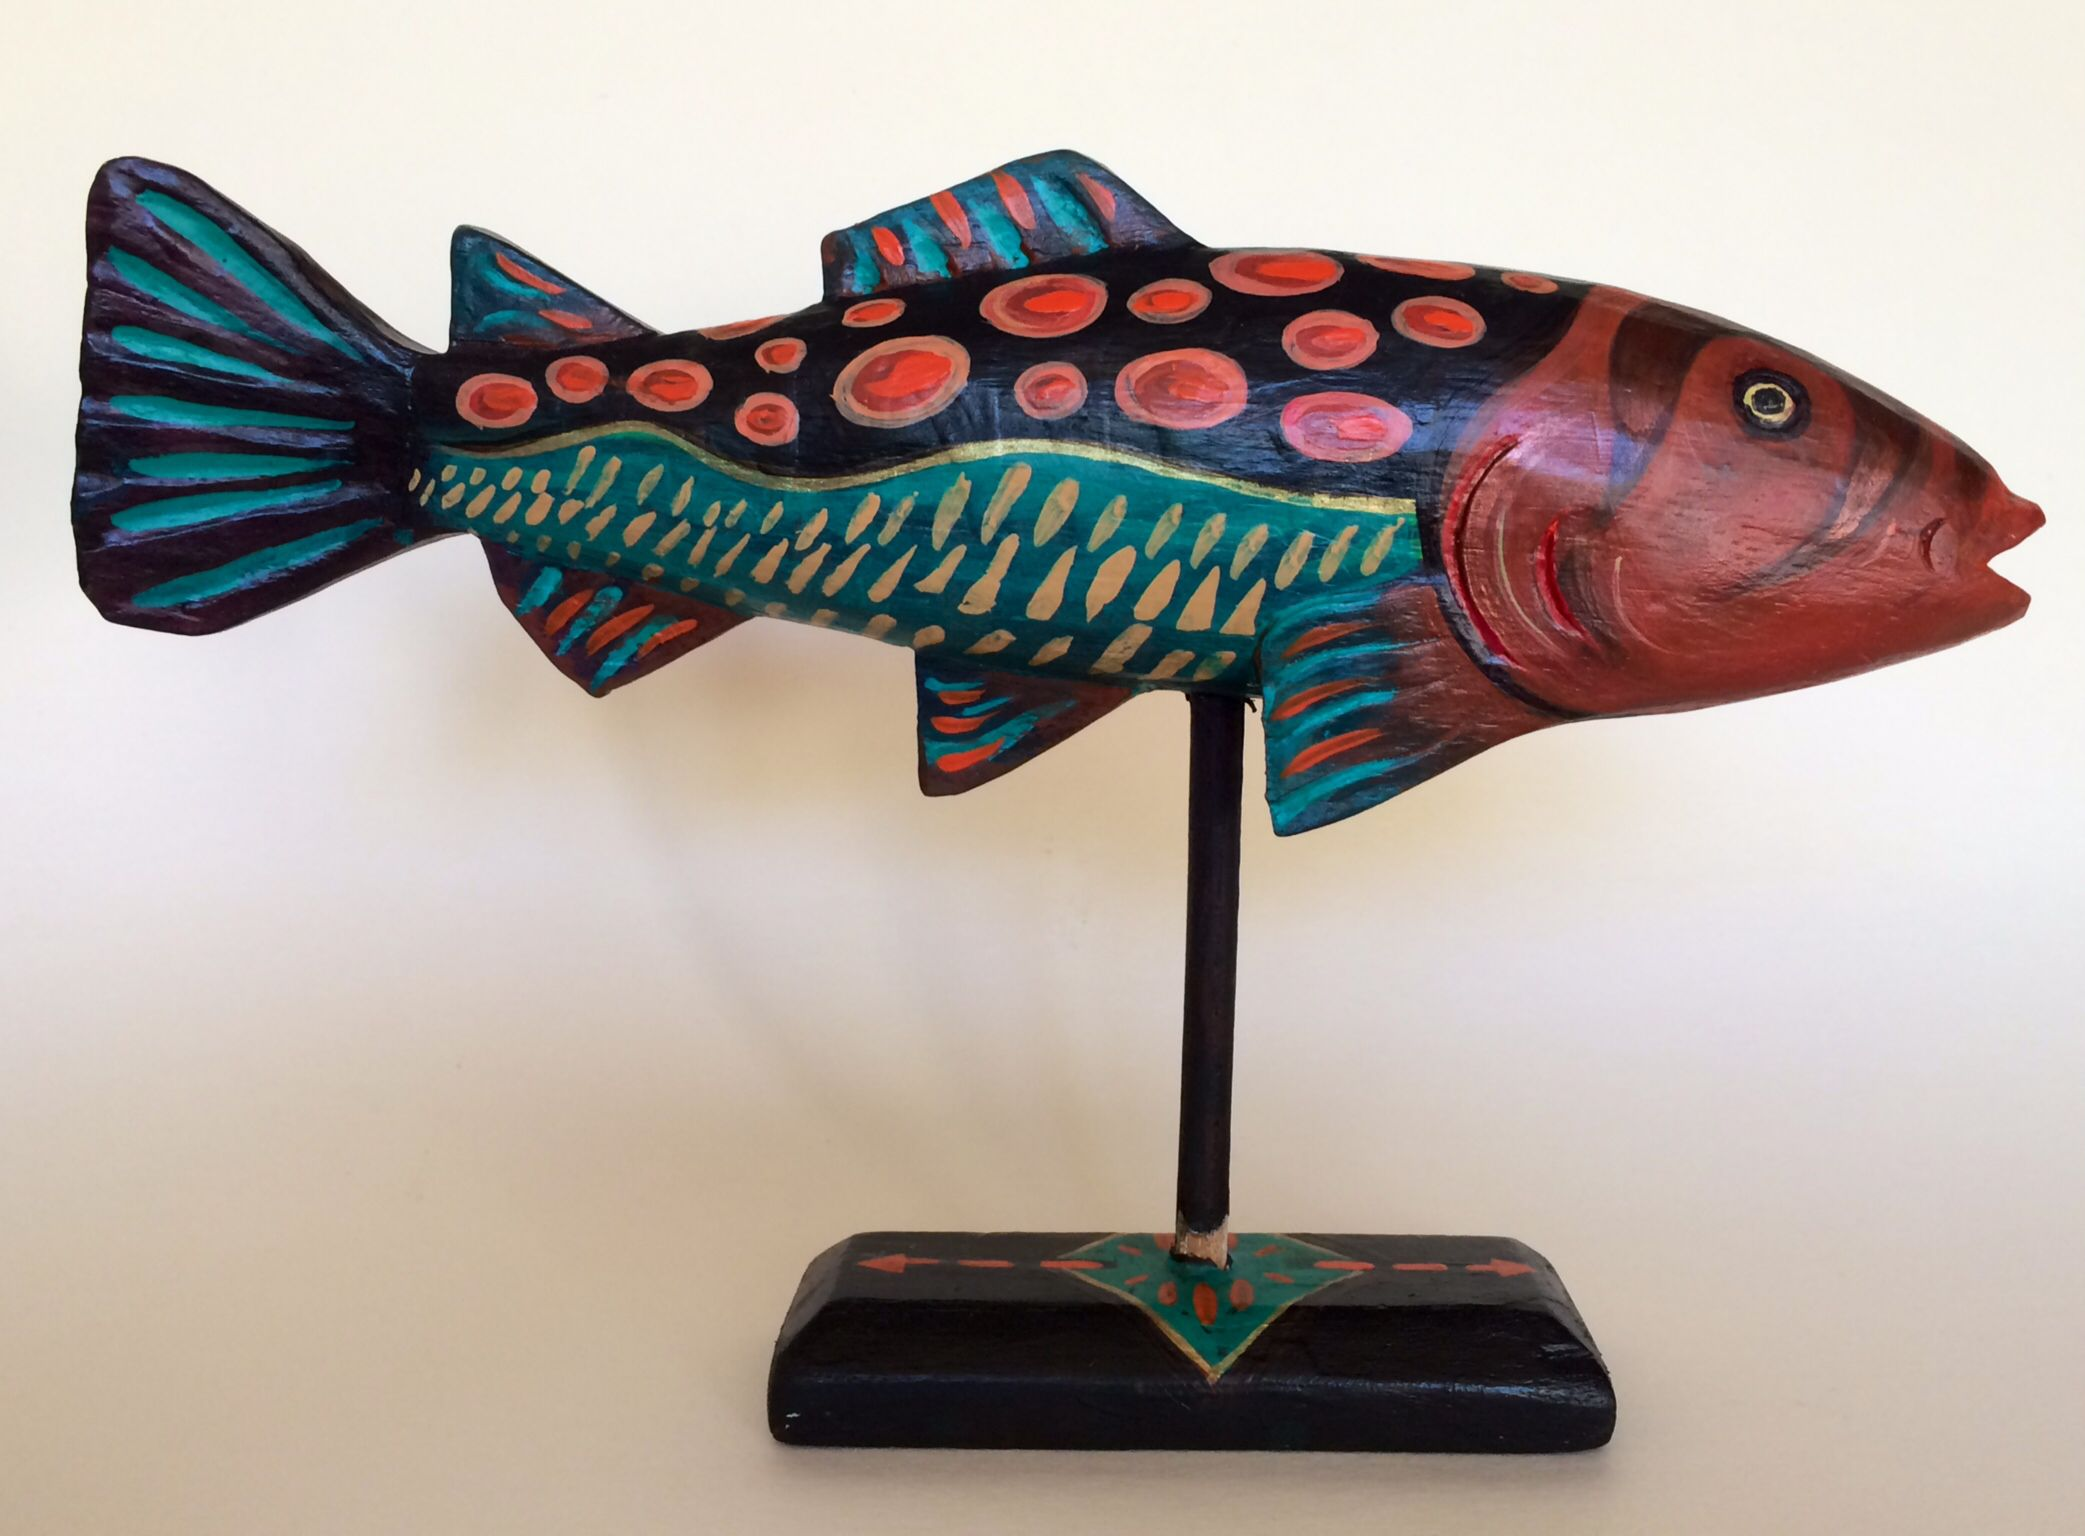 Coral Fish Katy Bratun Wood Base Painted With Acrylic Paint An Easy Form Can Be Made Crumpled Paper Smoothed Over Flat And Masking